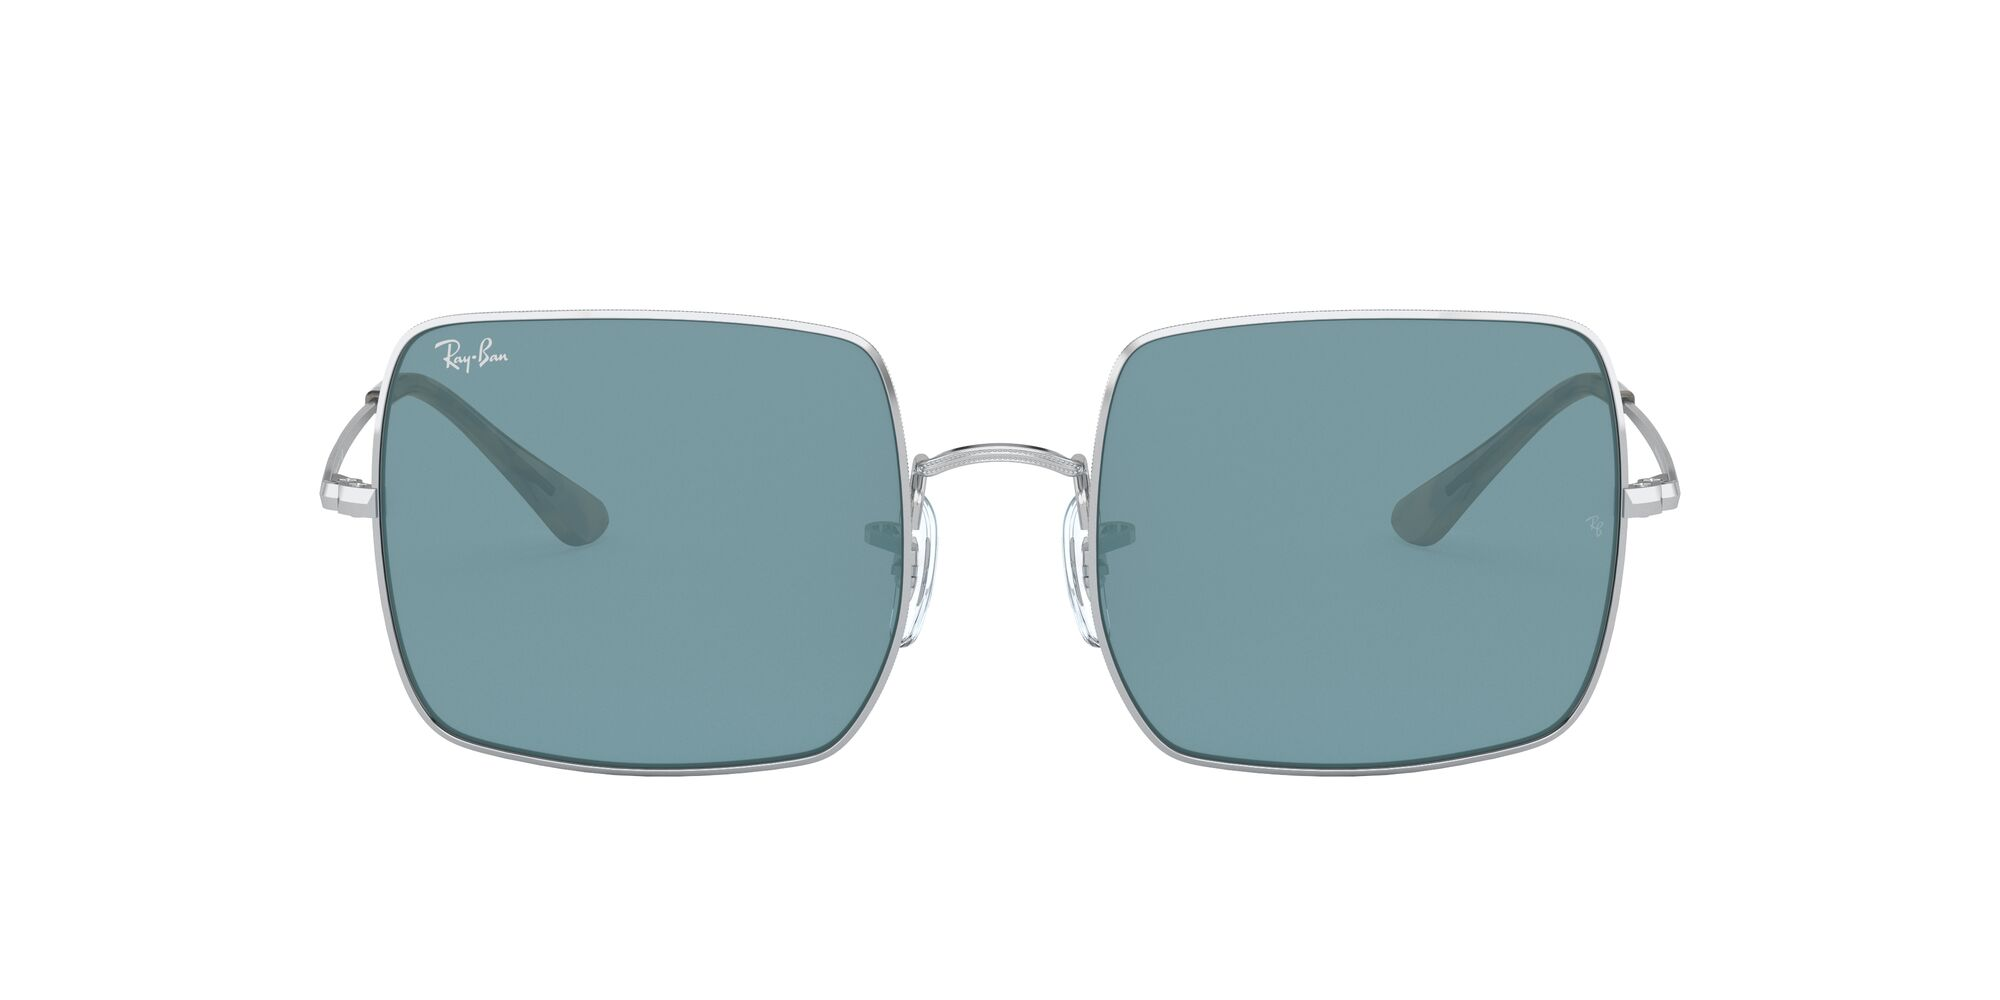 Front Ray-Ban Ray-Ban 0RB1971 919756 54/19 Zilver/Blauw